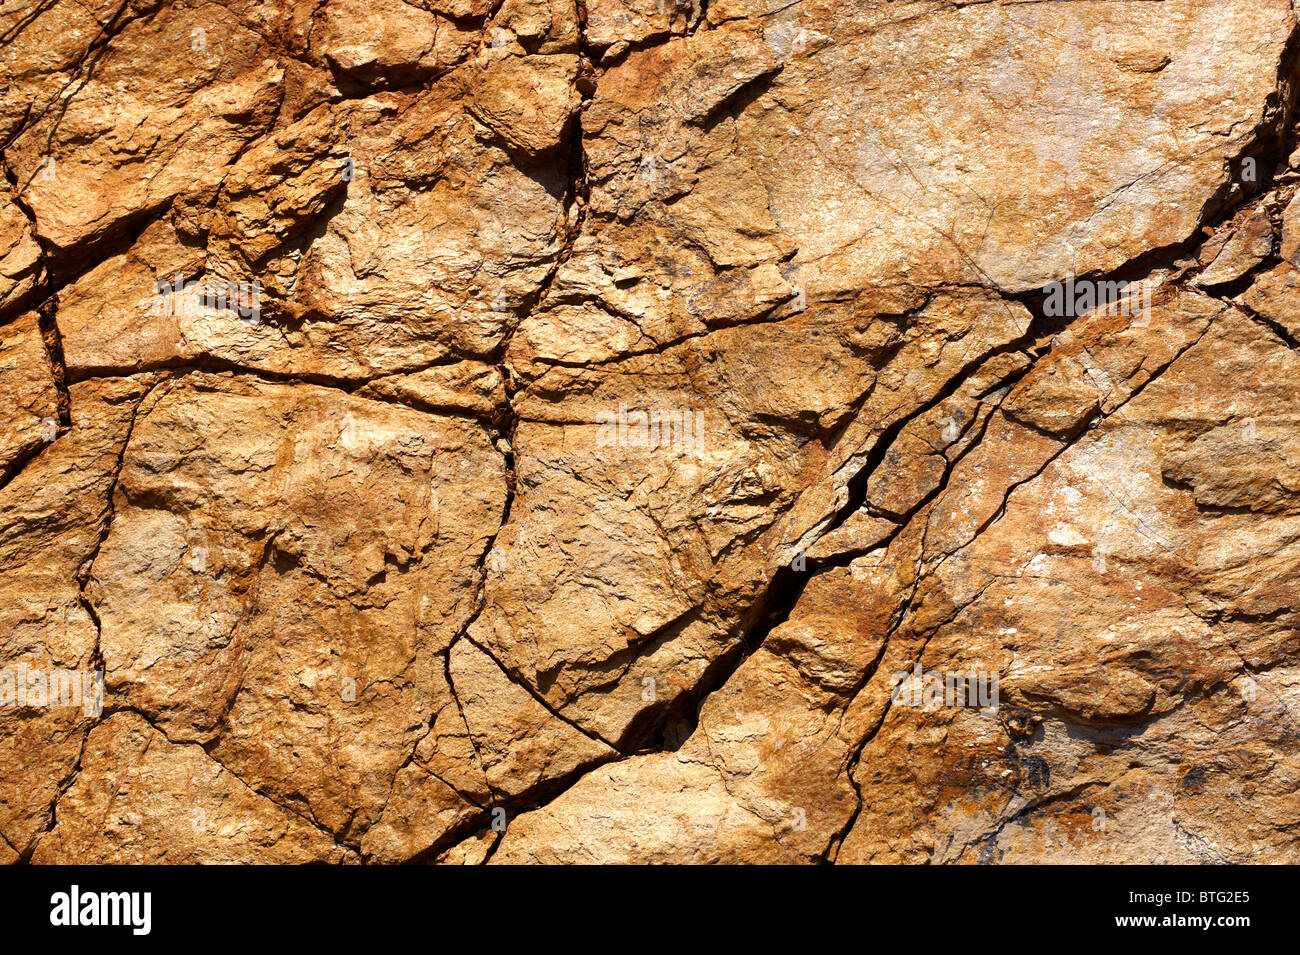 close up textures and layers of Sandstone schists on the Island of Ios, Cyclades Islands, Greece - Stock Image